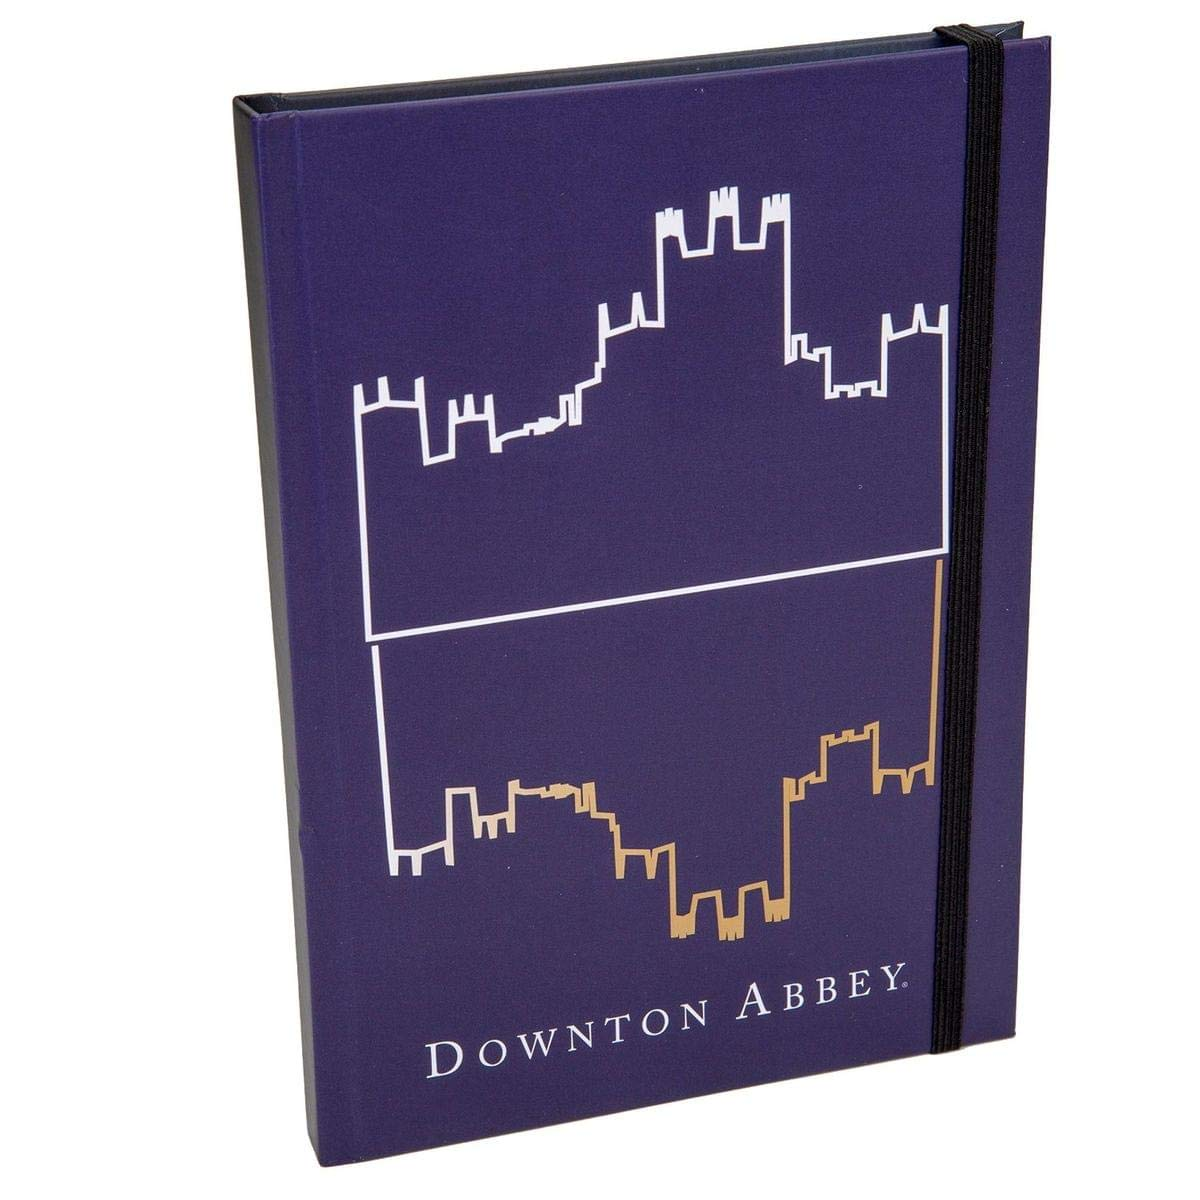 punto de venta barato Downton Abbey Journal Journal Journal - Large Diary with Silhouette Logo - 6 x 8.5 Notebook by Downton Abbey  buena reputación